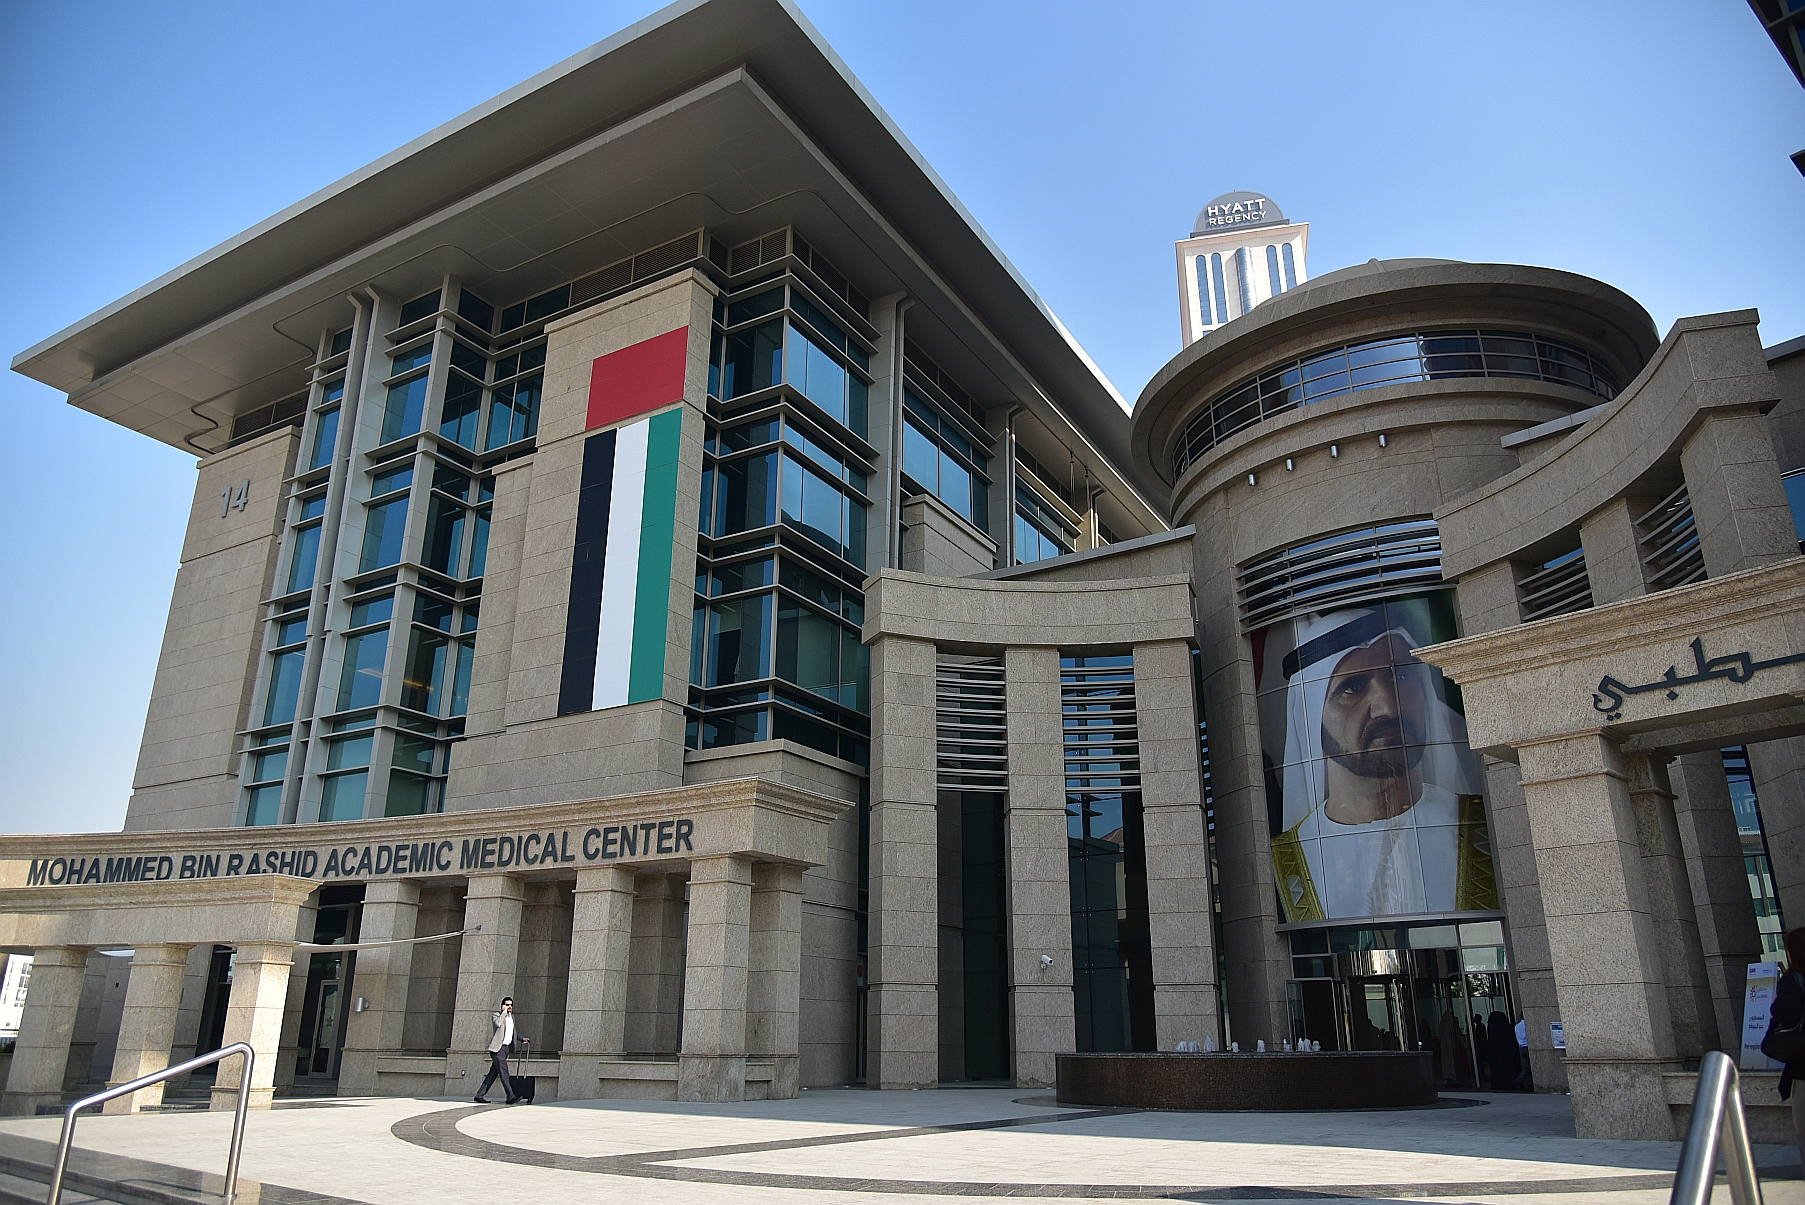 Mohammed Bin Rashid Medical University